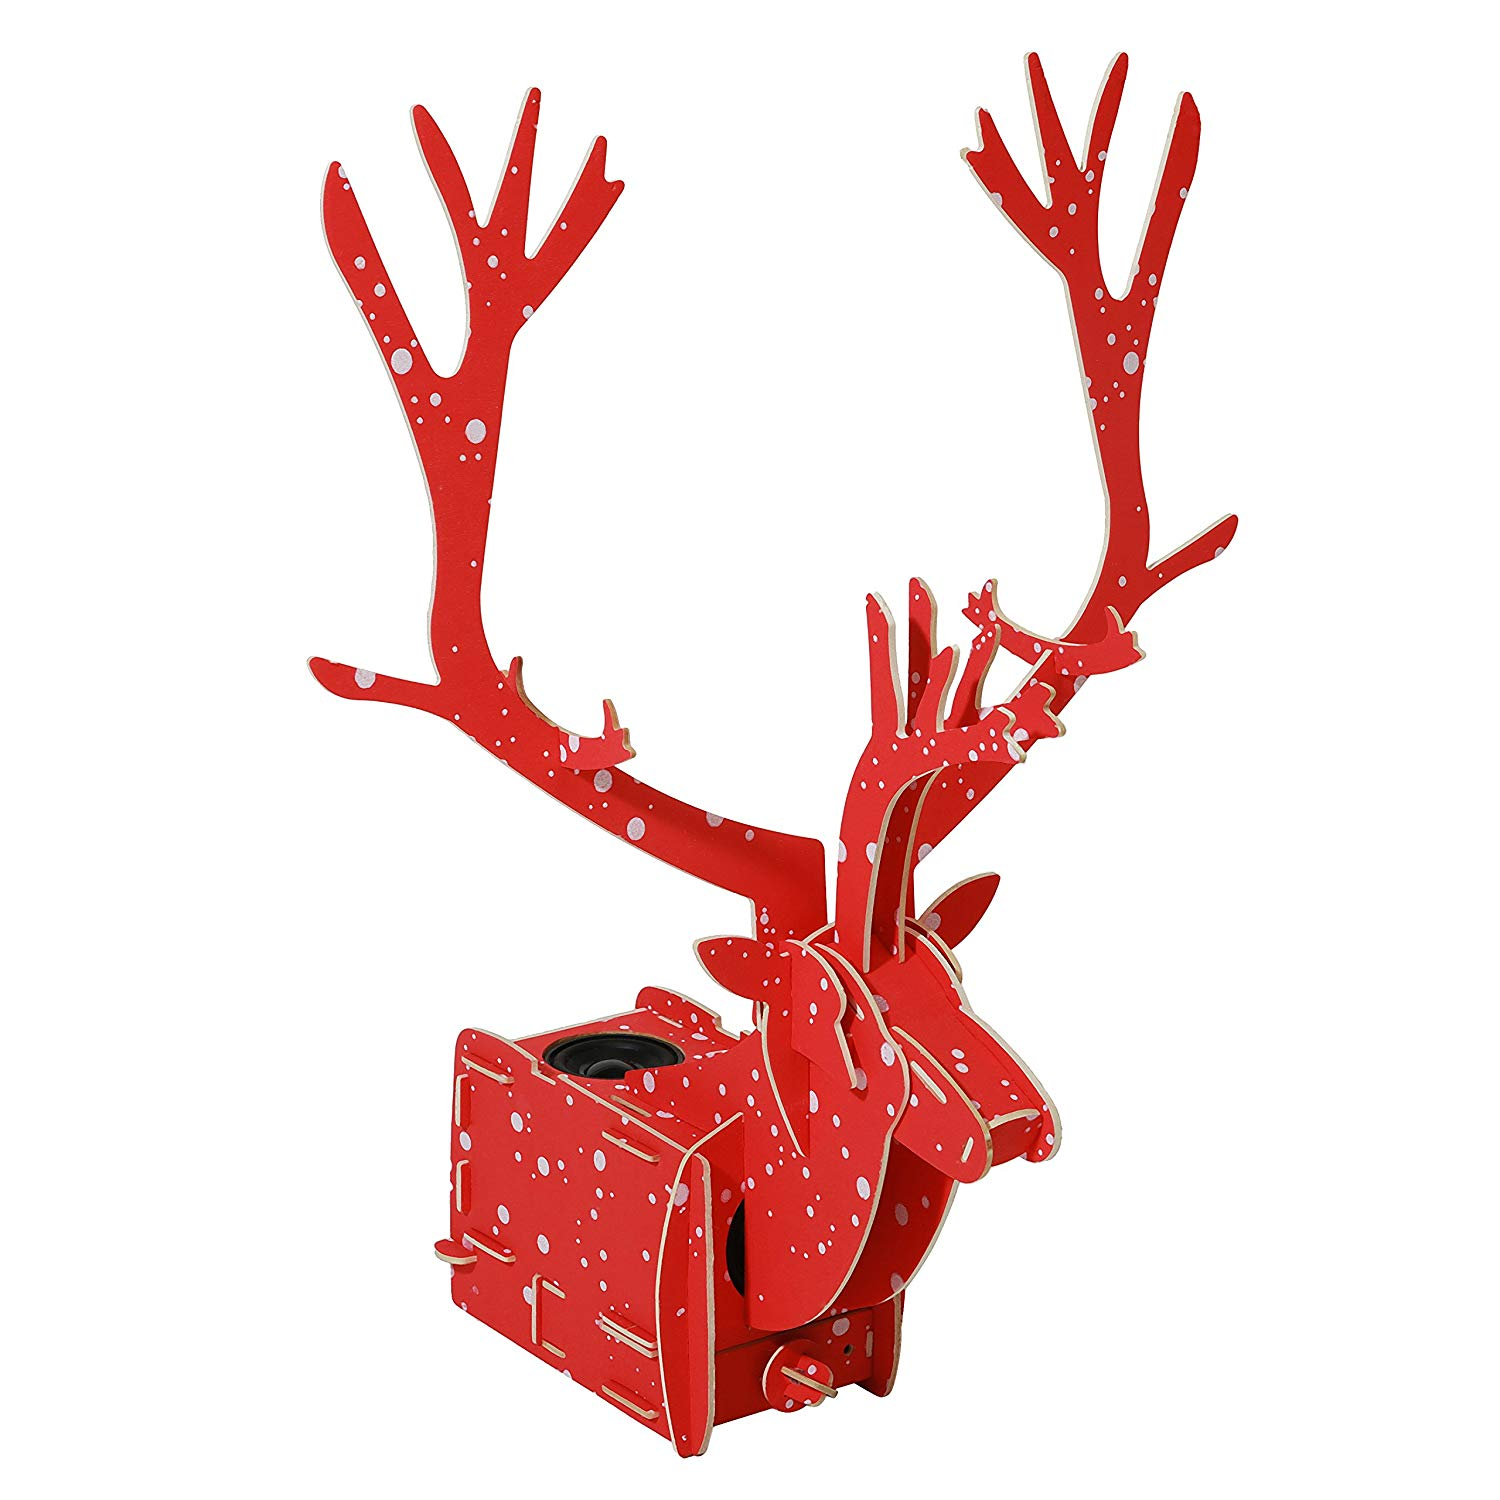 Reindeer 3D Wooden Stereo Puzzle Speaker DIY Kit- Creative Portable Wireless Bluetooth Speaker- Christmas Home Decor- Perfect Holiday Gifts, Red